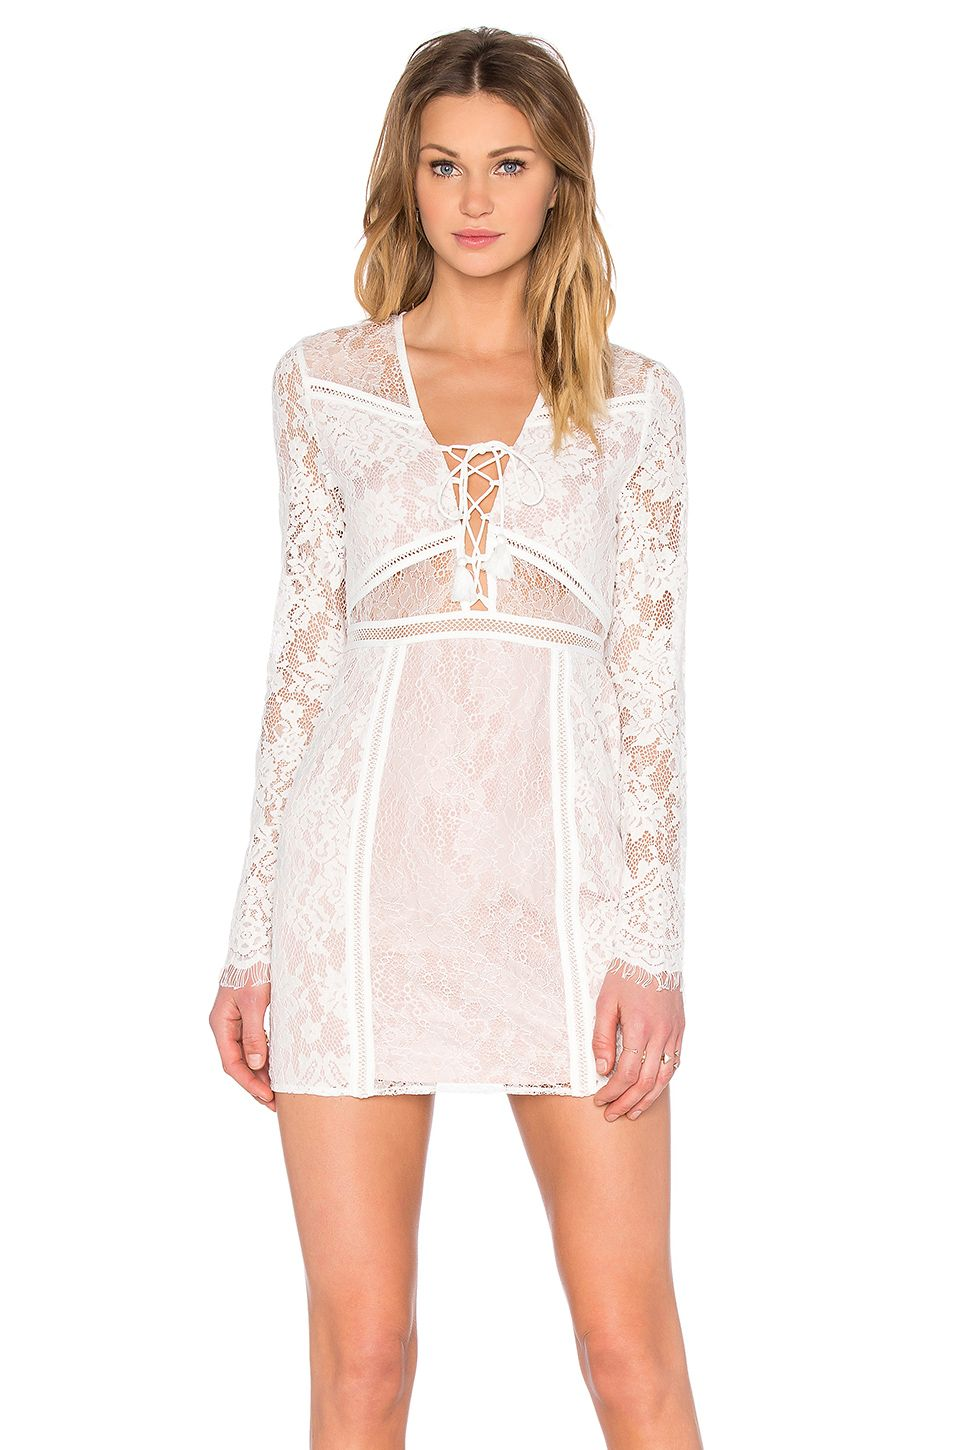 Black lace dress for summer wedding  REVOLVE  So ChicSo Hot  Pinterest  White lace Spring summer